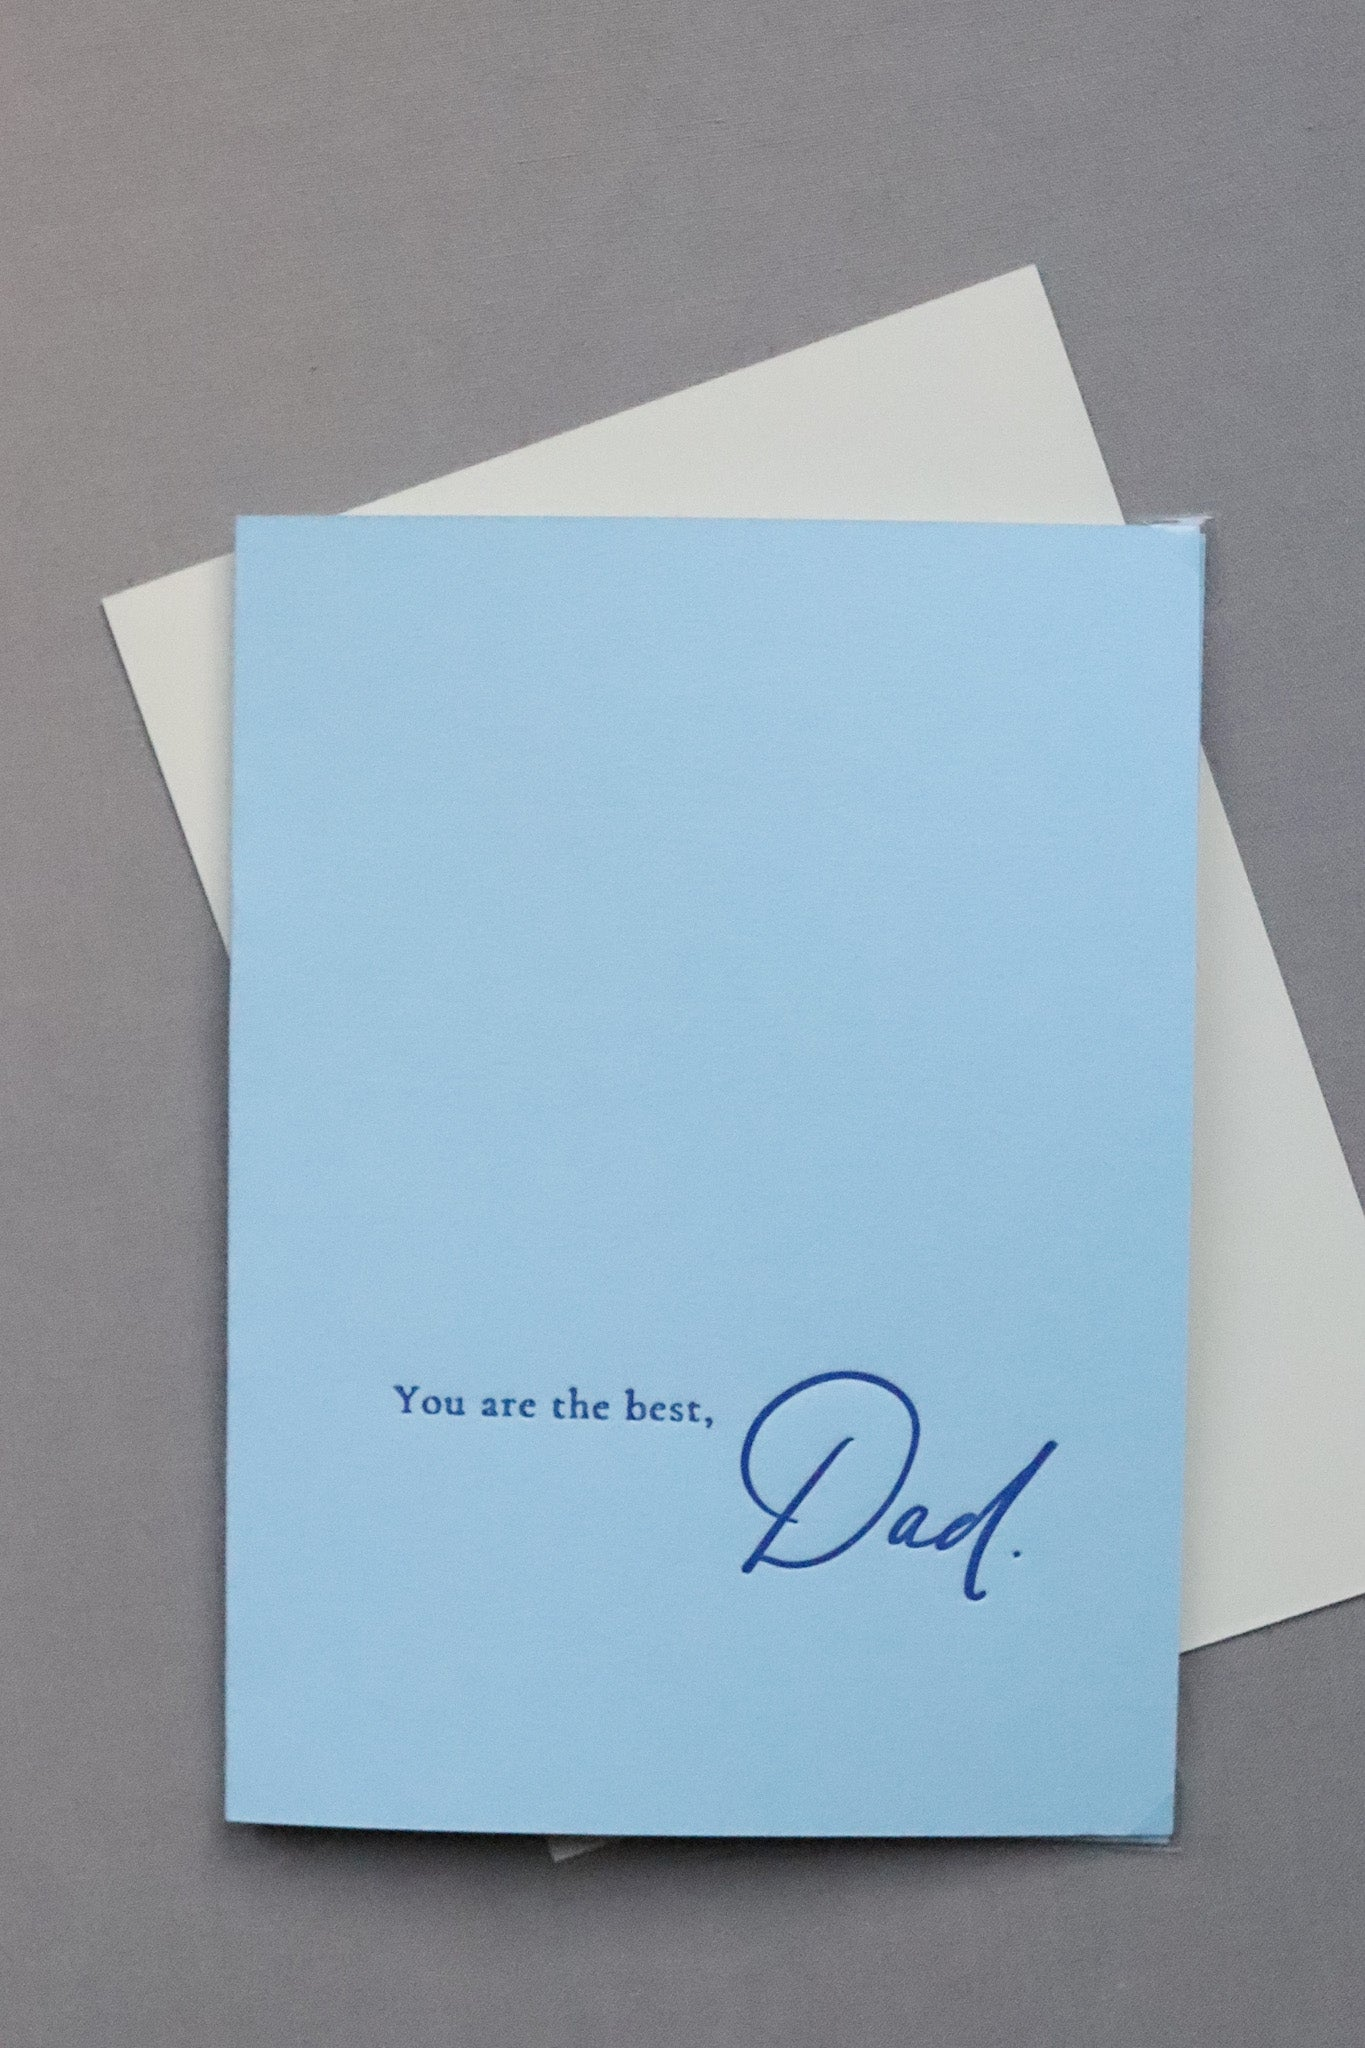 You Are The Best, Dad - Letterpress Card